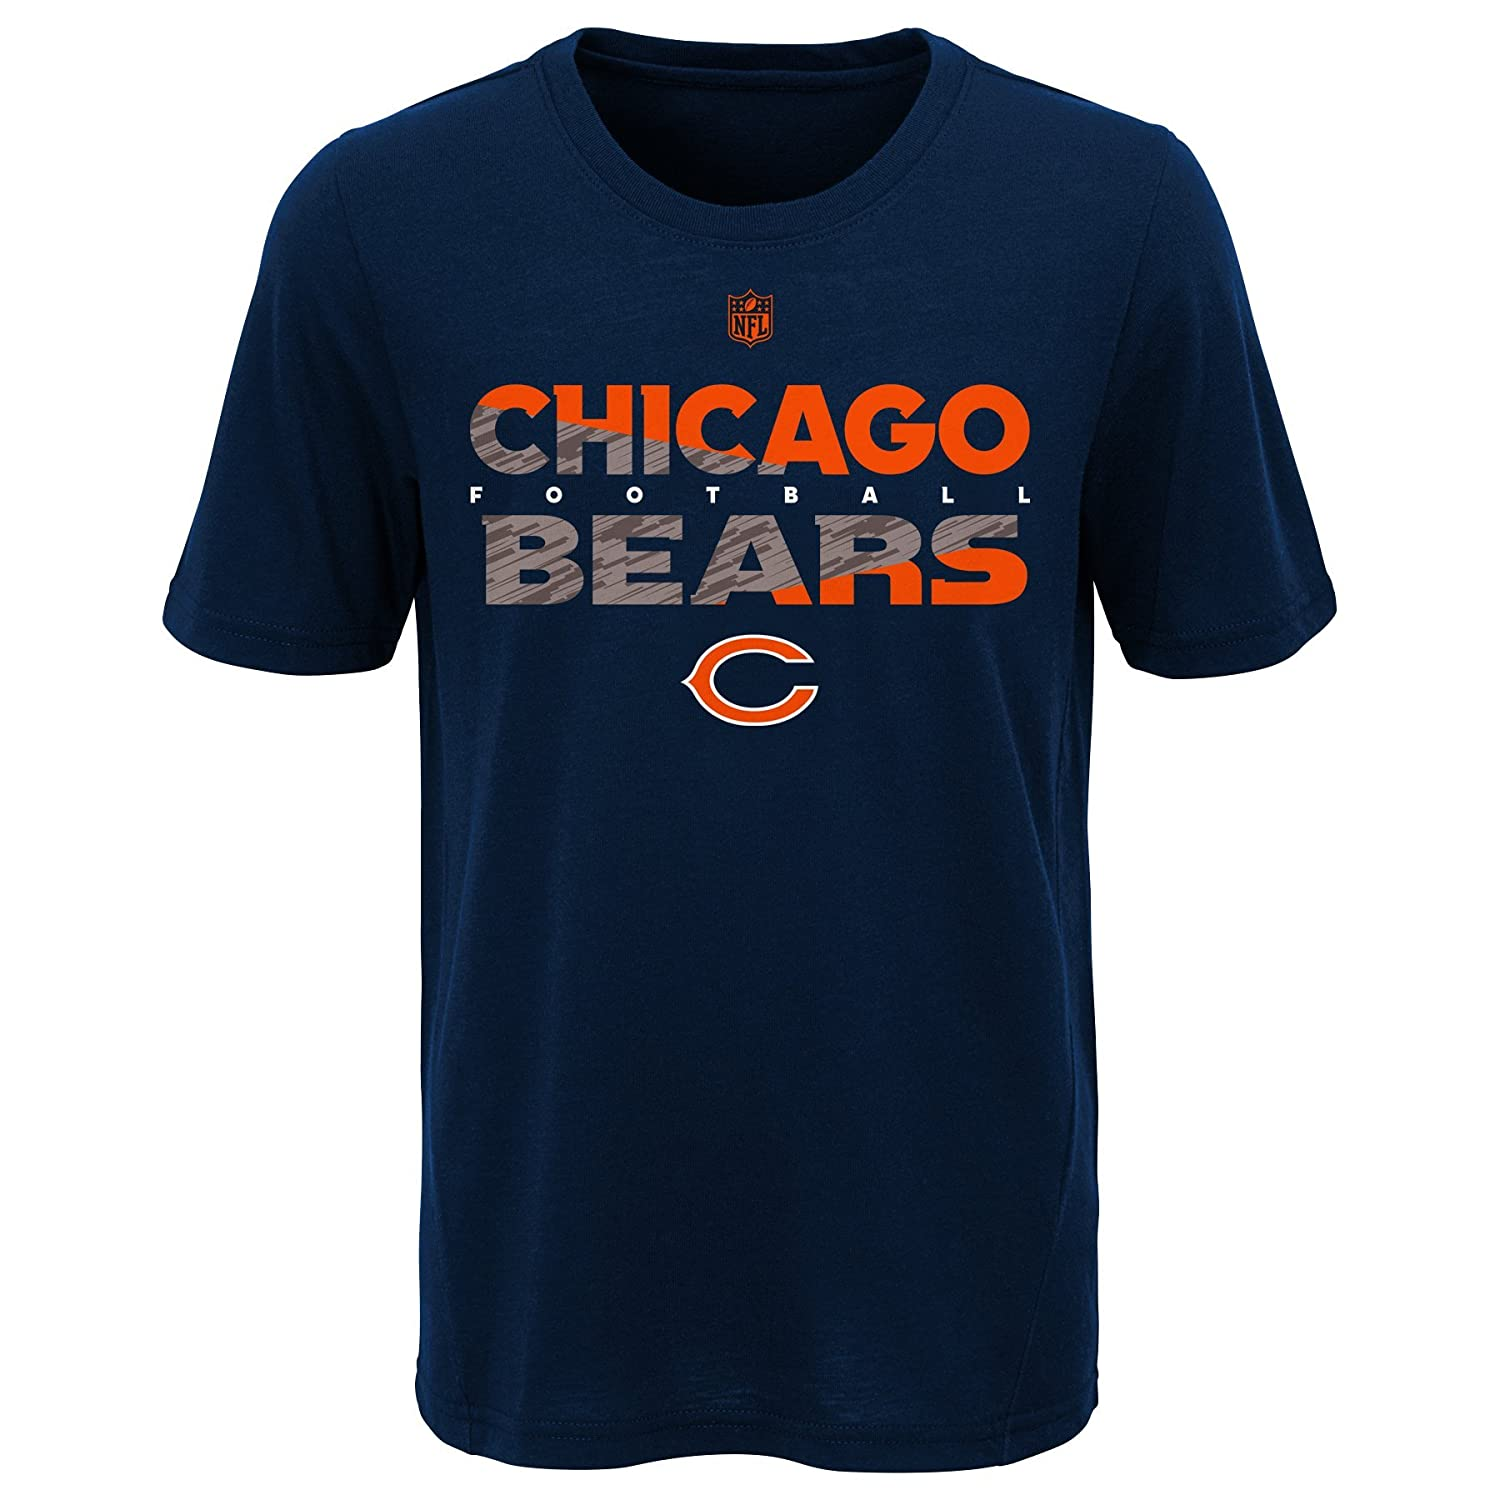 huge selection of 568dd ef6e8 Amazon.com : Outerstuff Youth Boys Chicago Bears Tee NFL ...